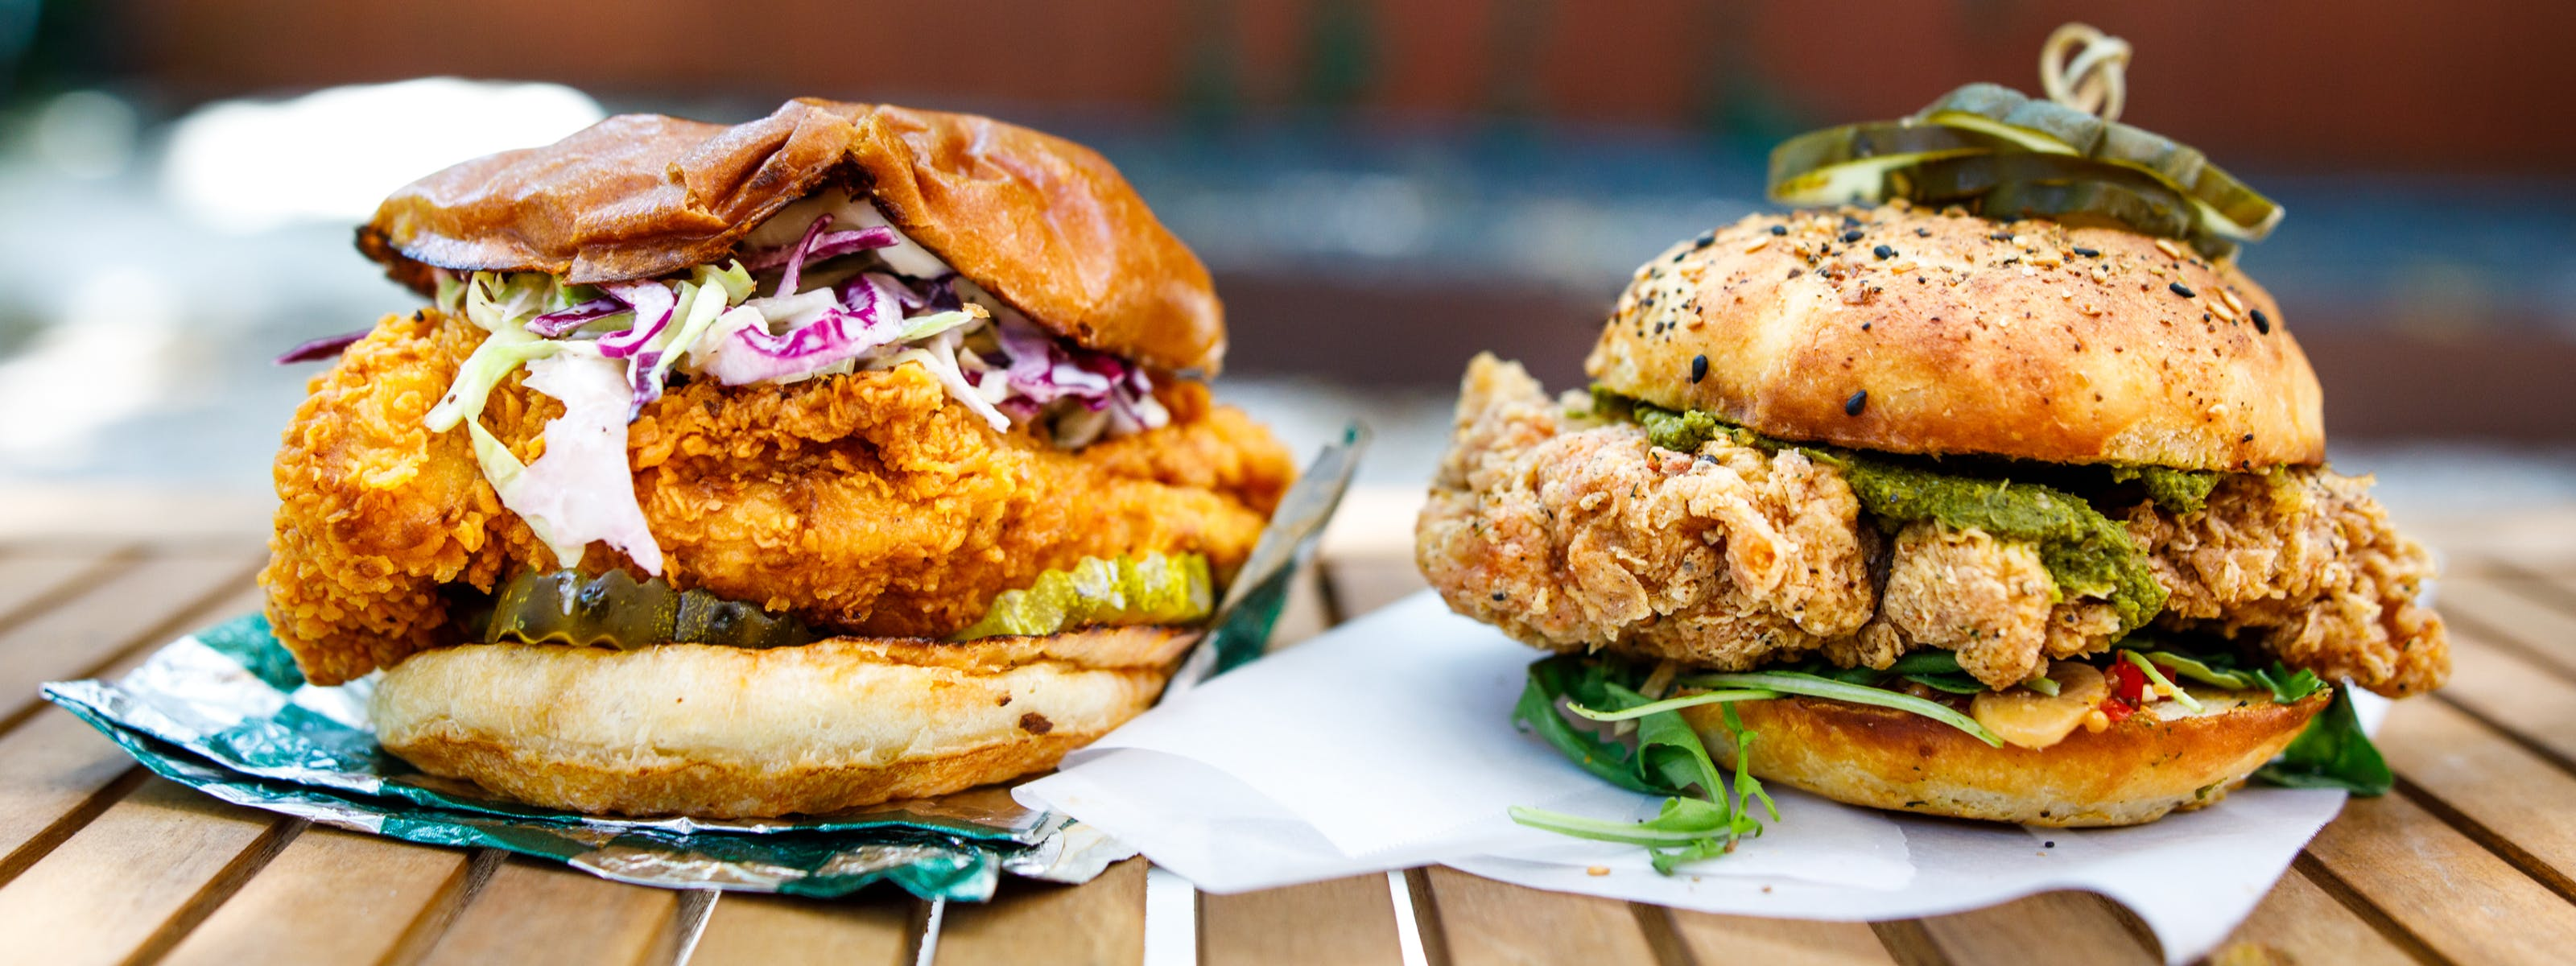 The Best Fried Chicken Sandwiches In Austin - Austin - The Infatuation